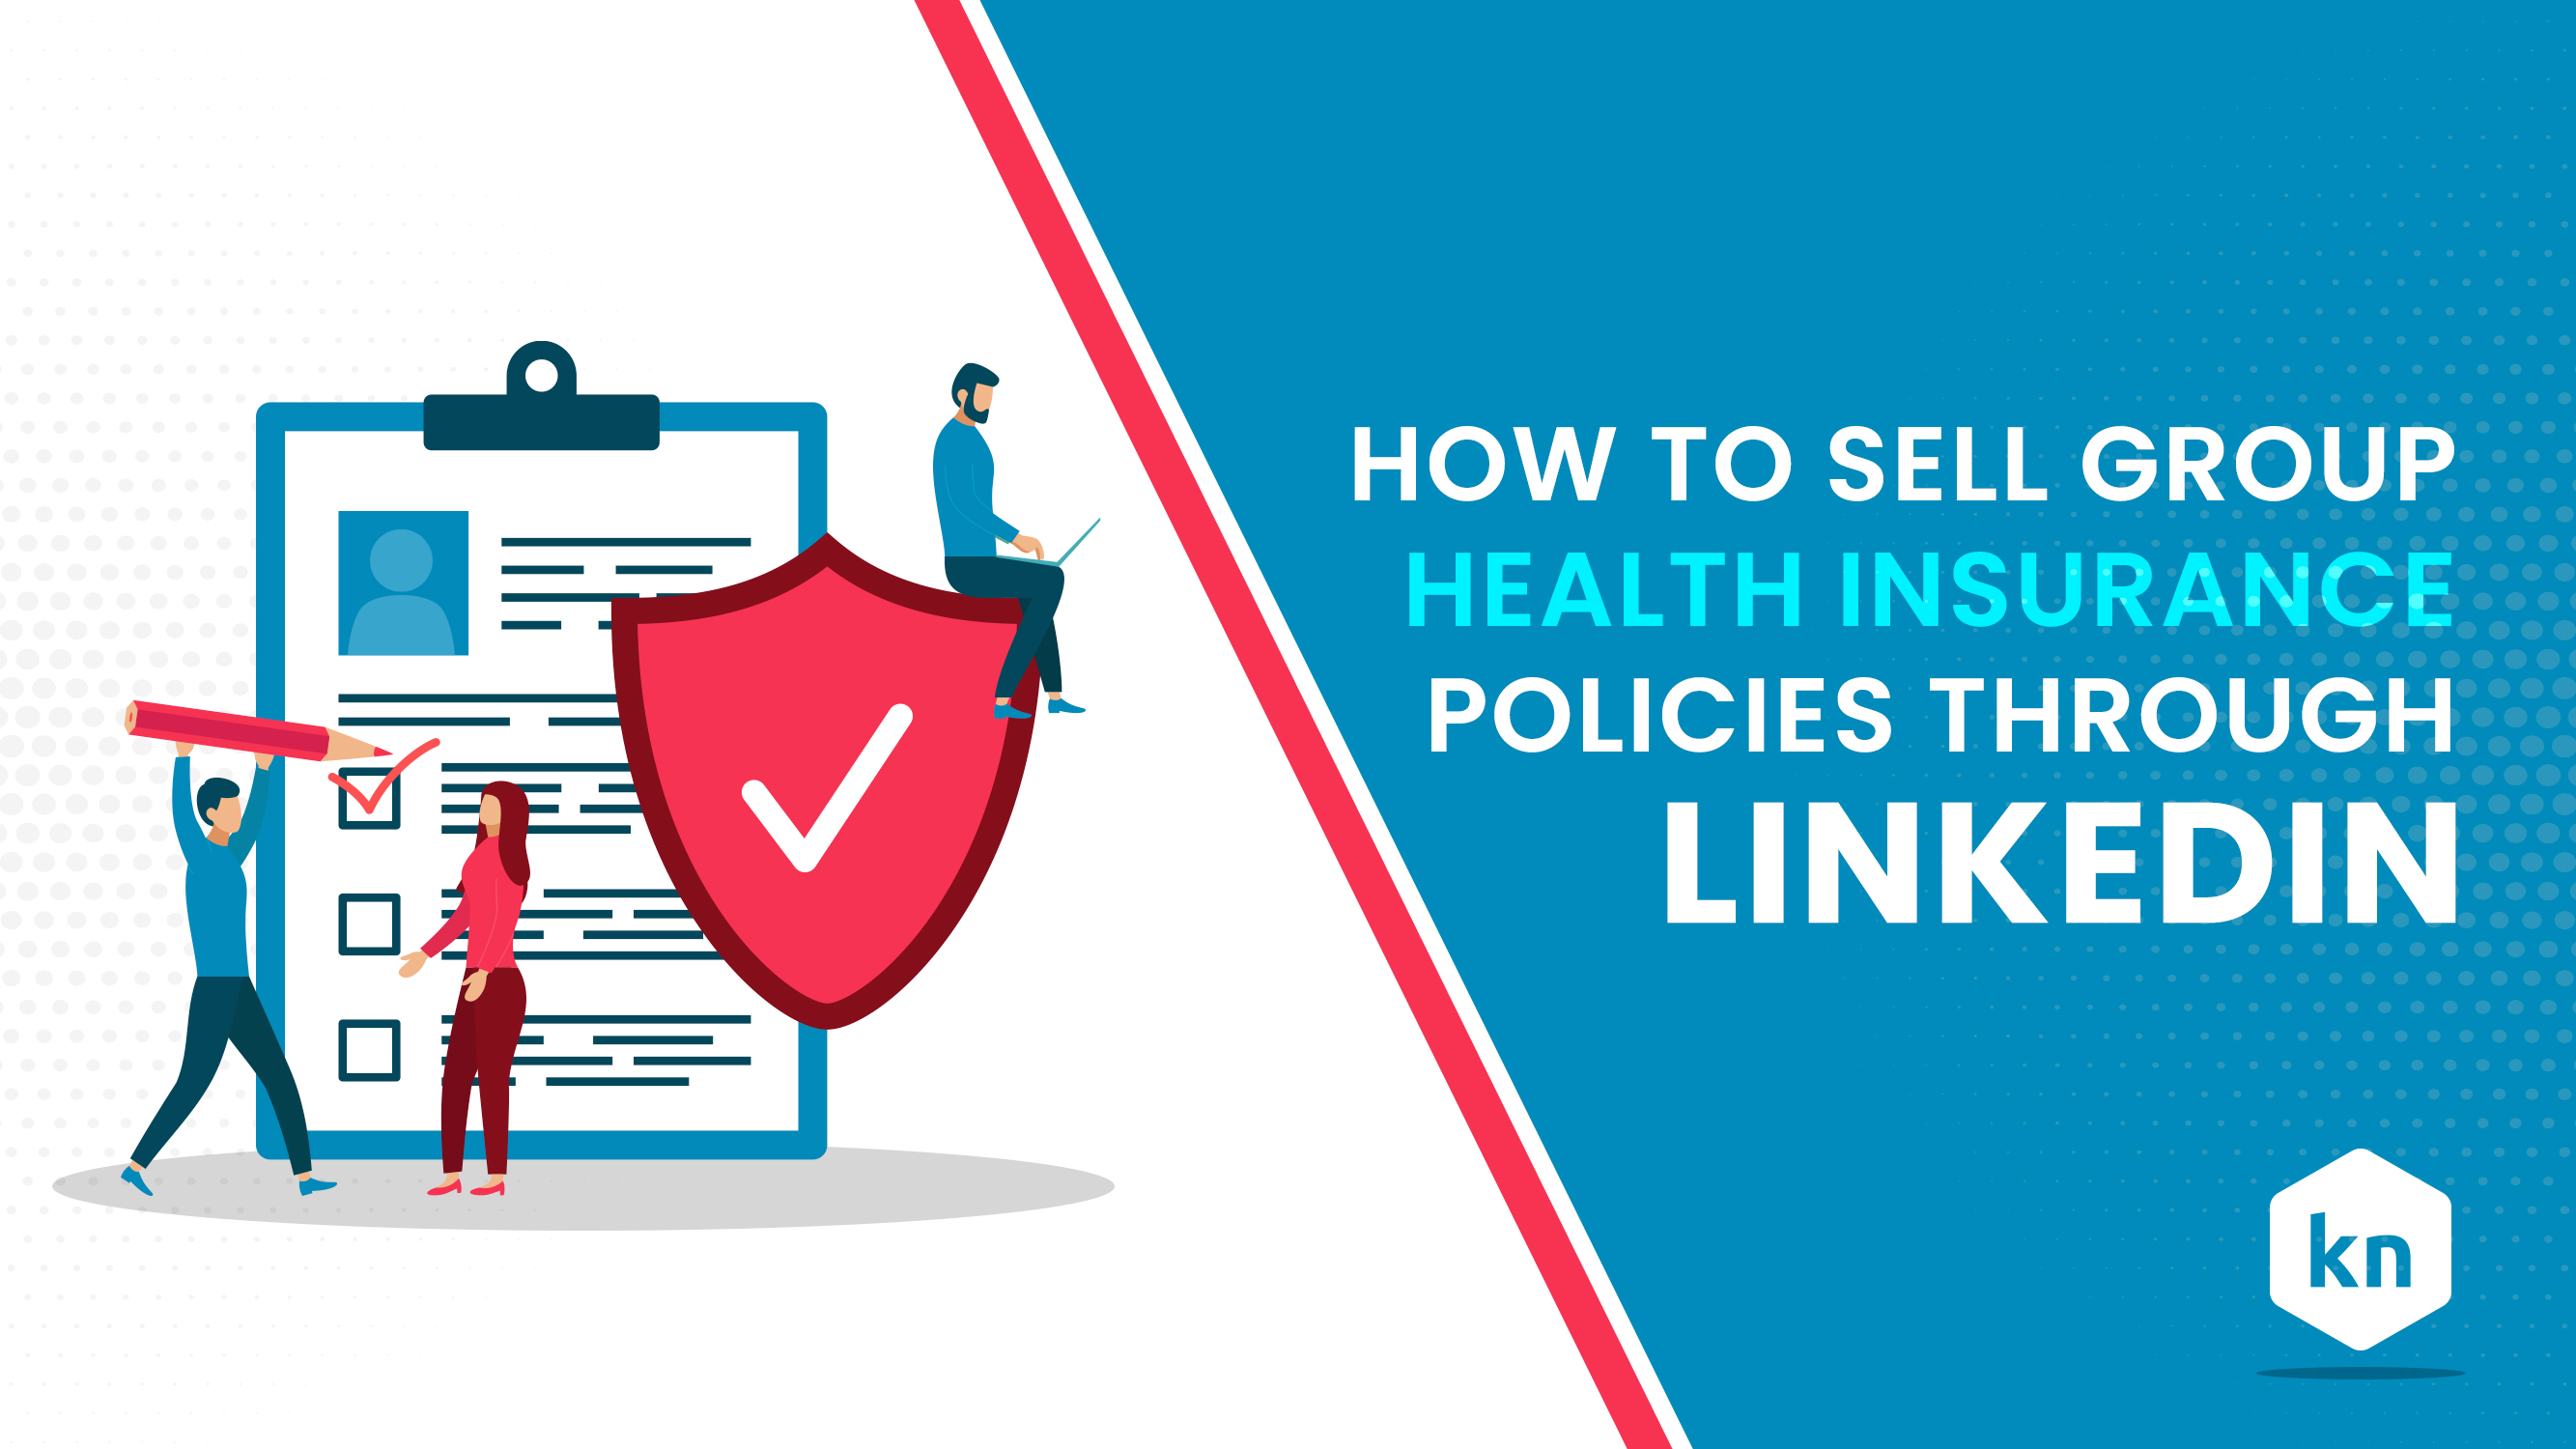 How To Sell Group Health Insurance Policies Through LinkedIn